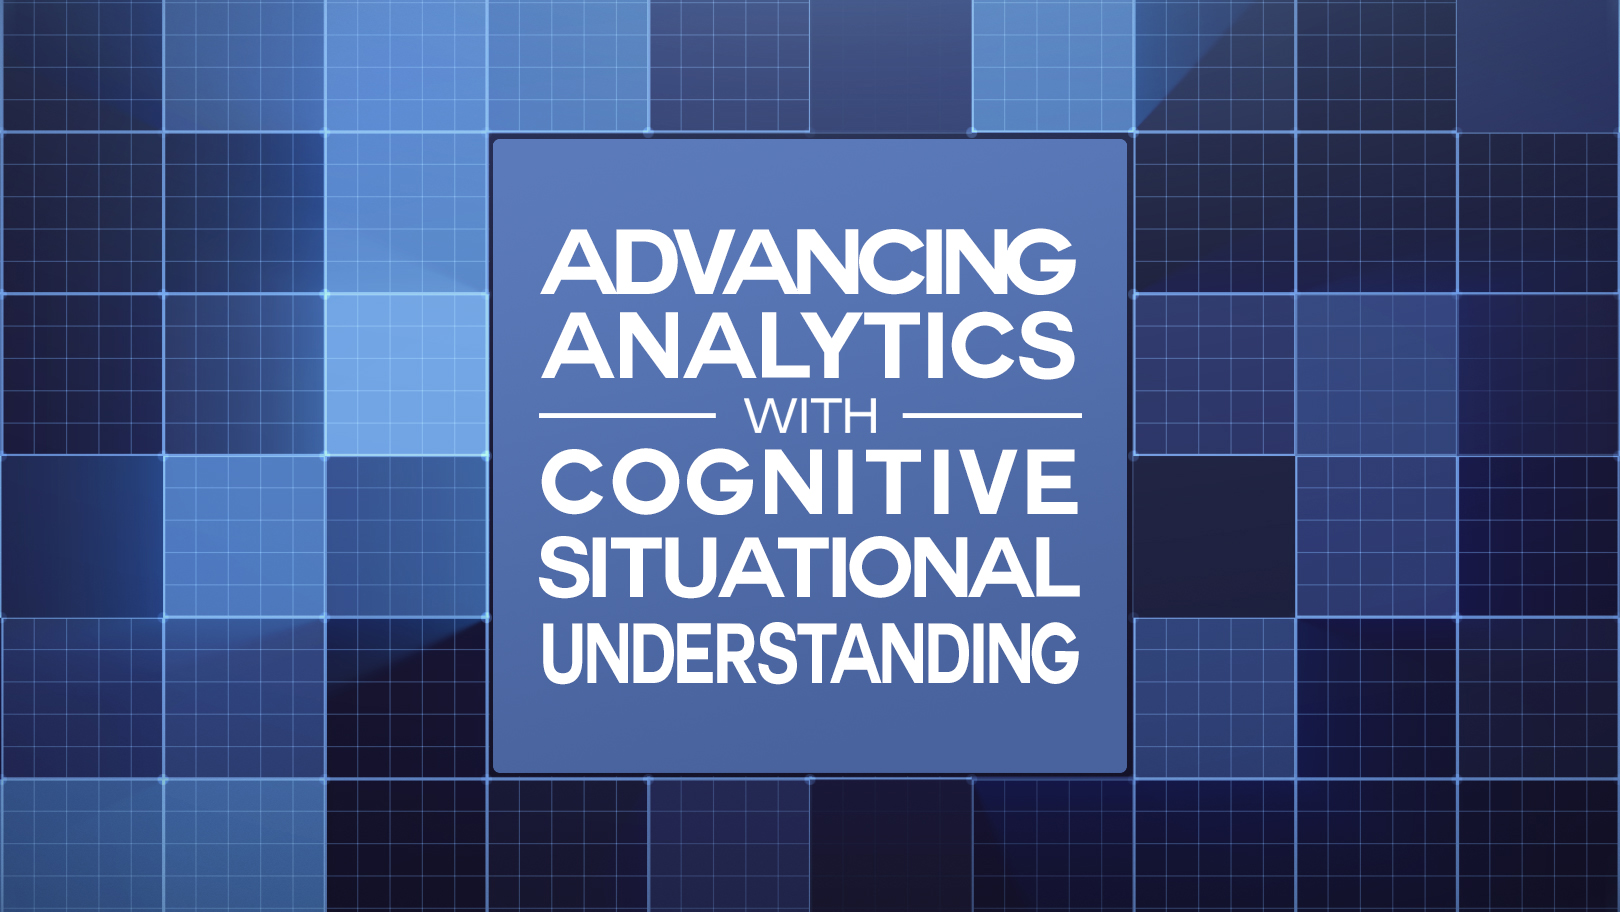 Advancing Analytics with Cognitive Situational Understanding